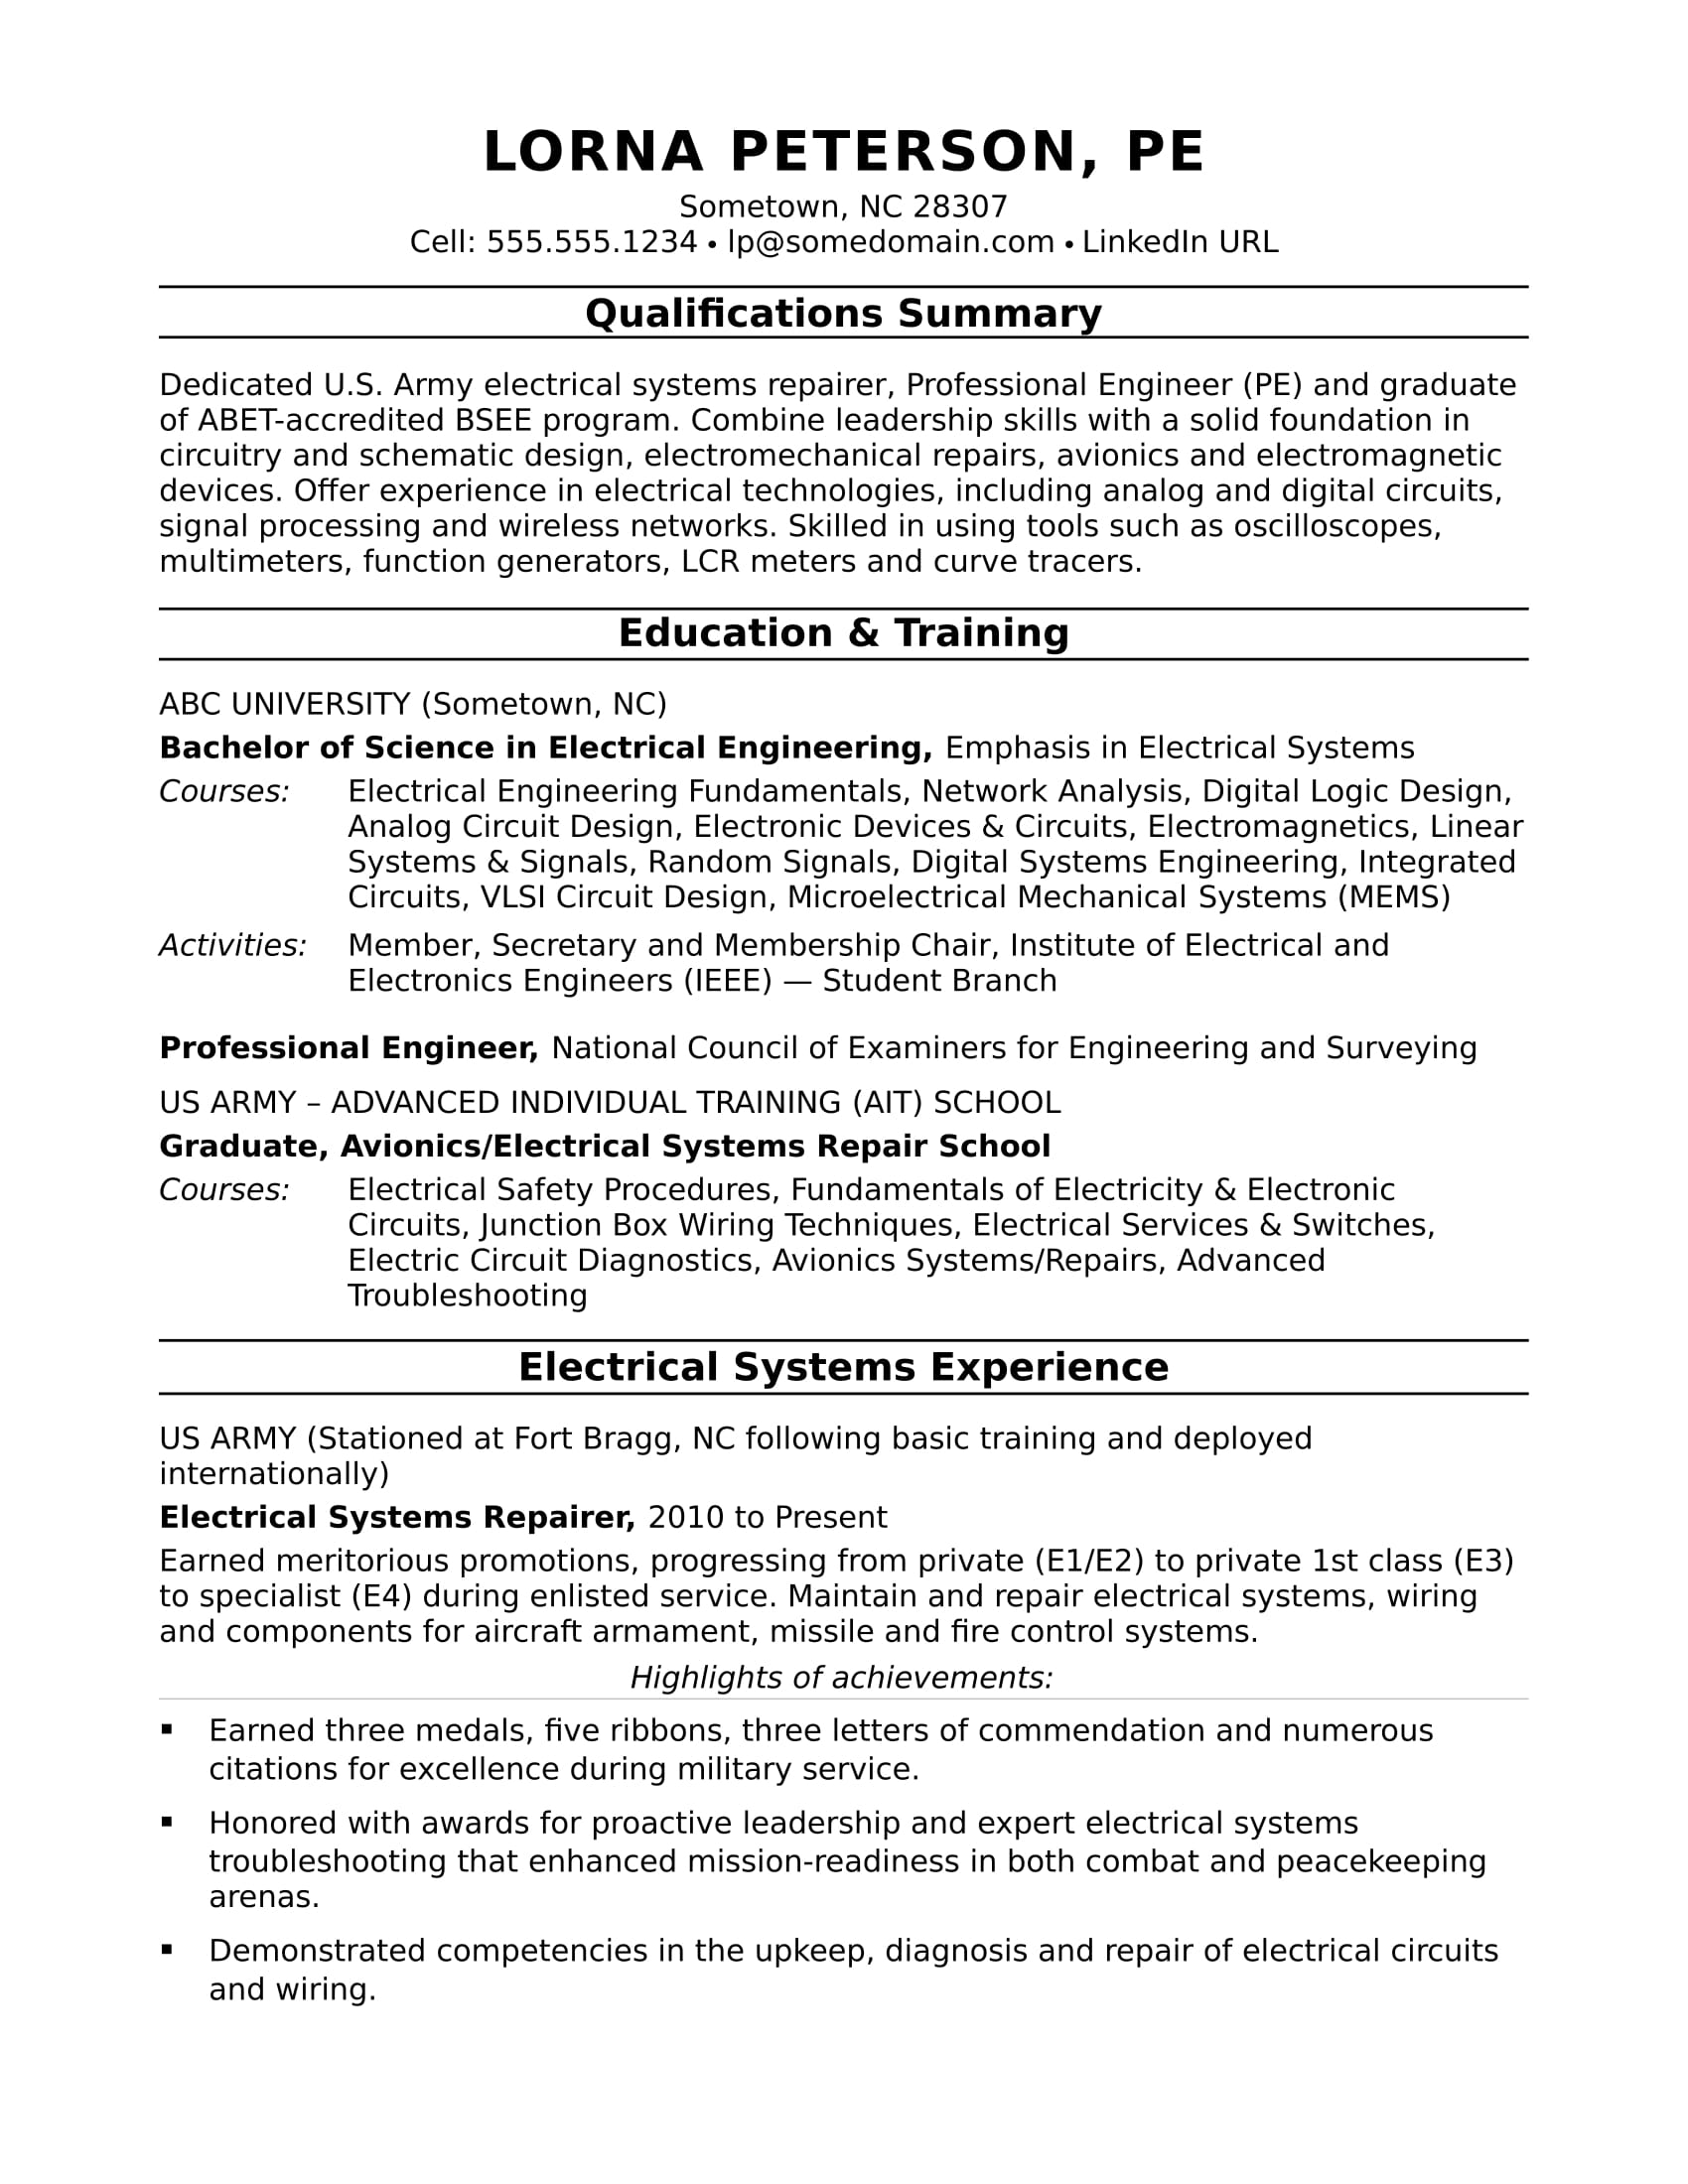 Services Integrated Circuit Technologies Sample Resume For A Midlevel Electrical Engineer